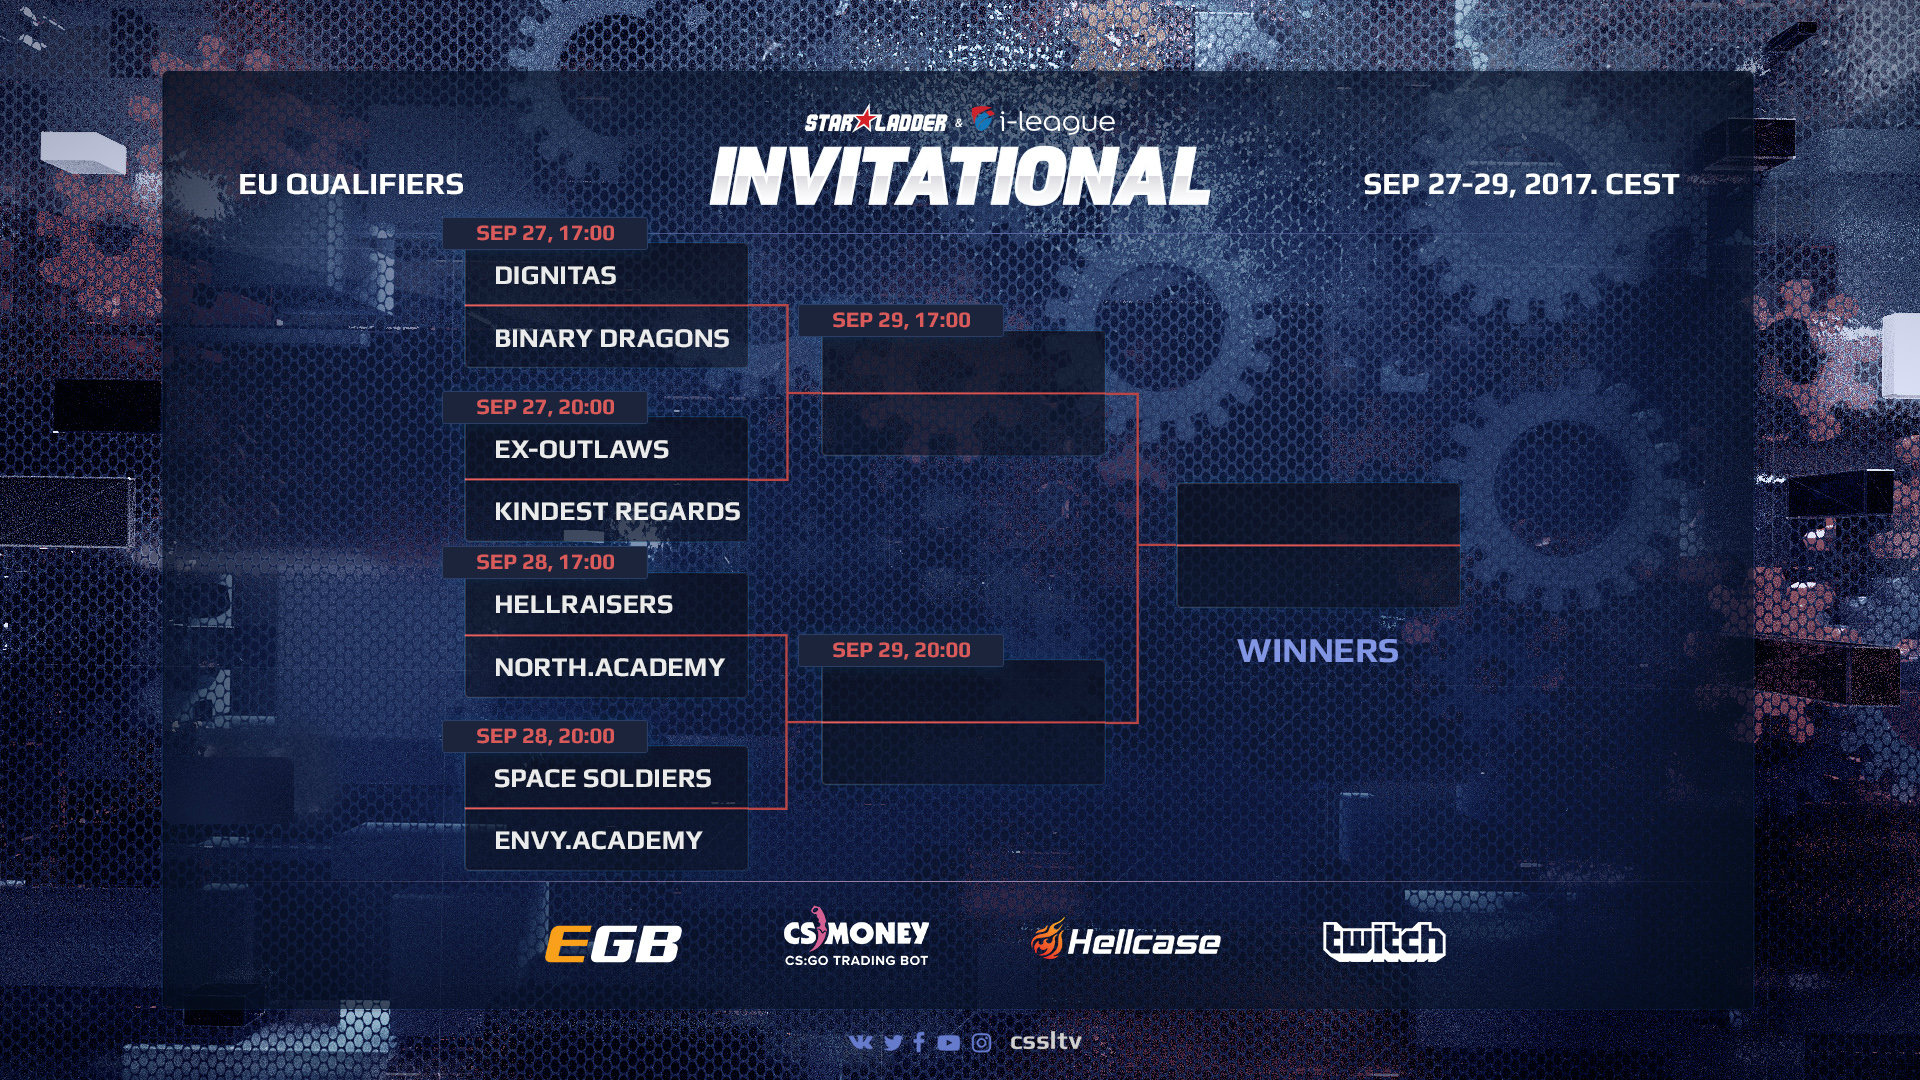 Second bracket - Image: StarLadder